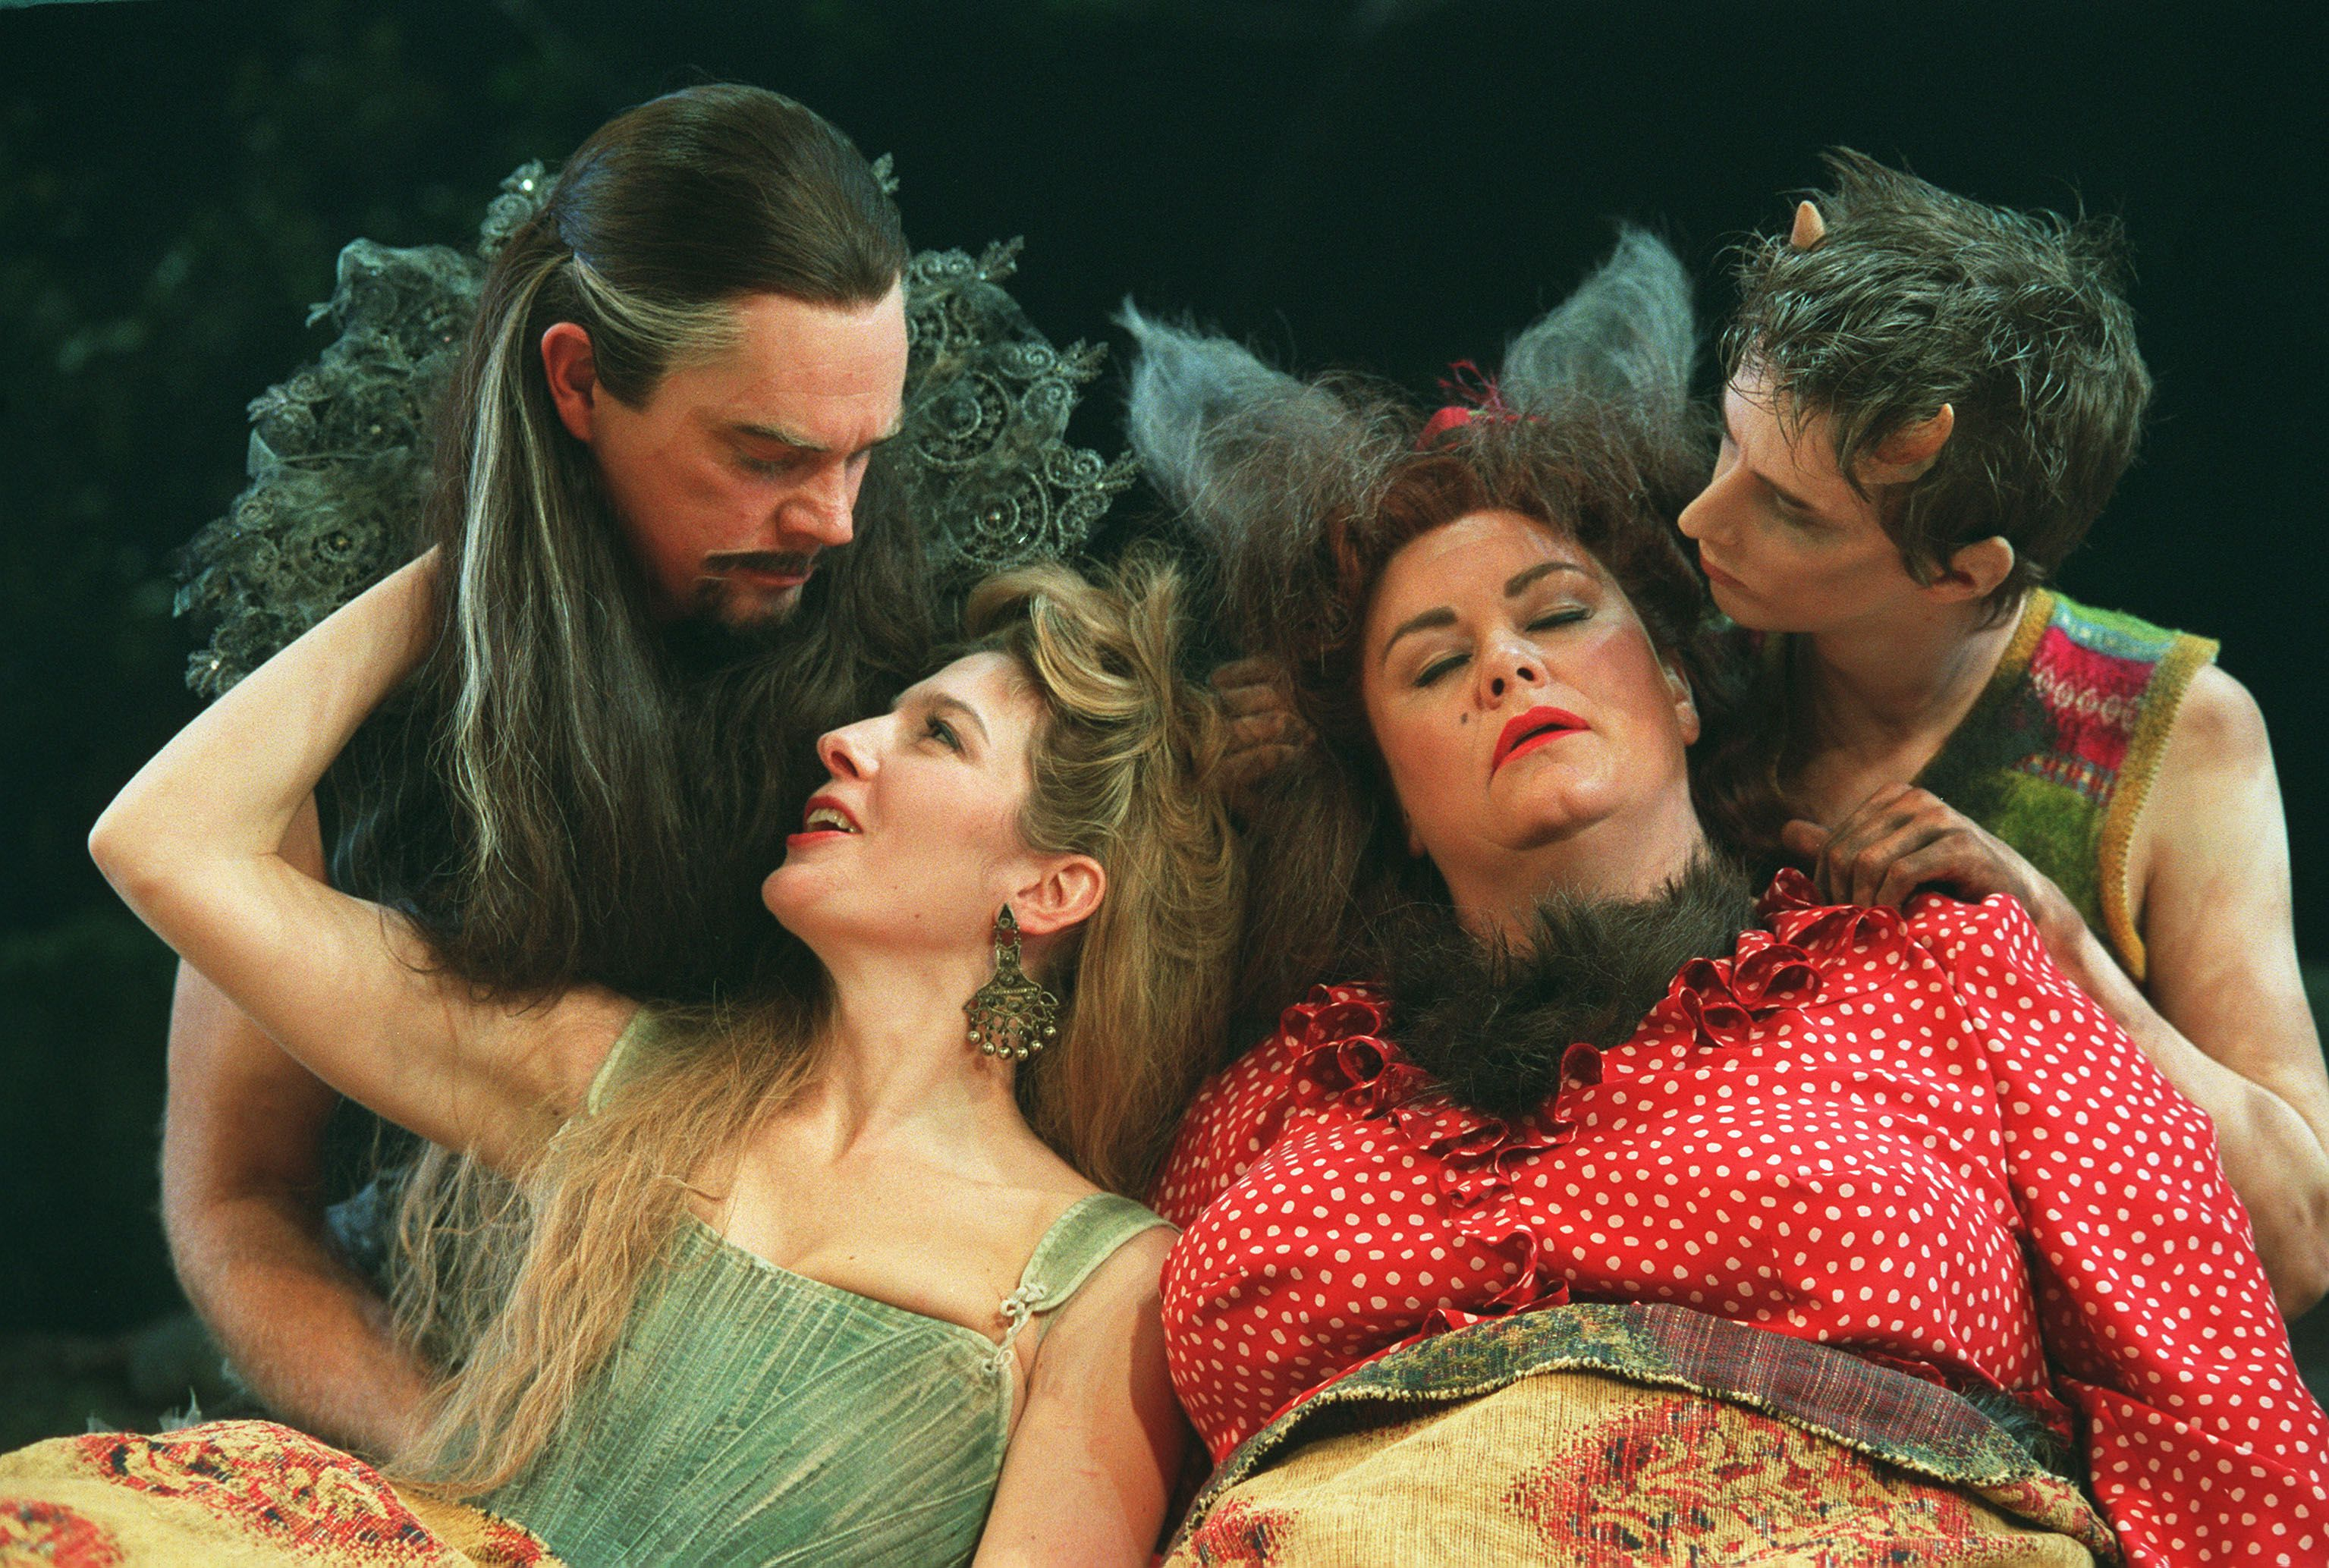 The fairies Oberon, Titania, and Puck onstage with Bottom, who has donkey ears